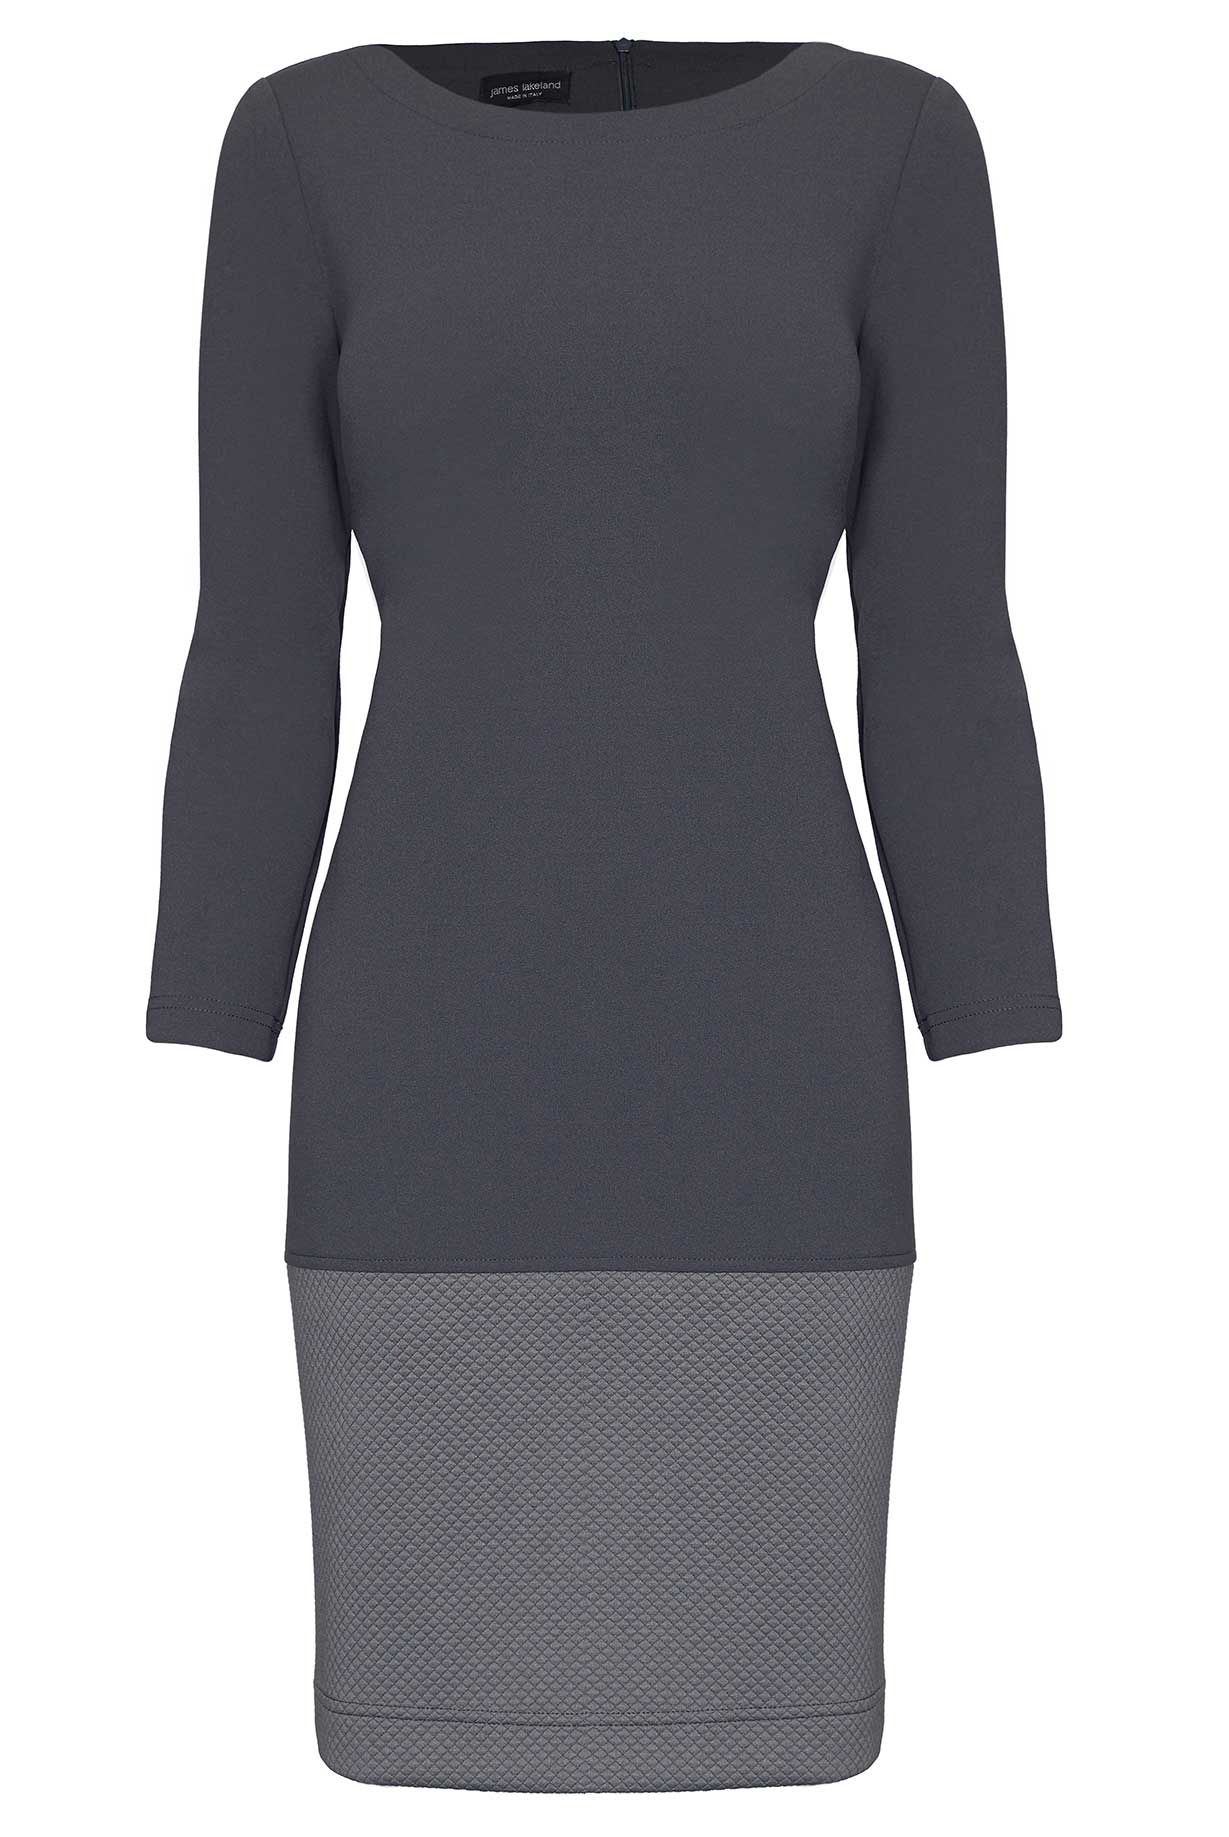 James Lakeland Textured Panel Dress, Charcoal